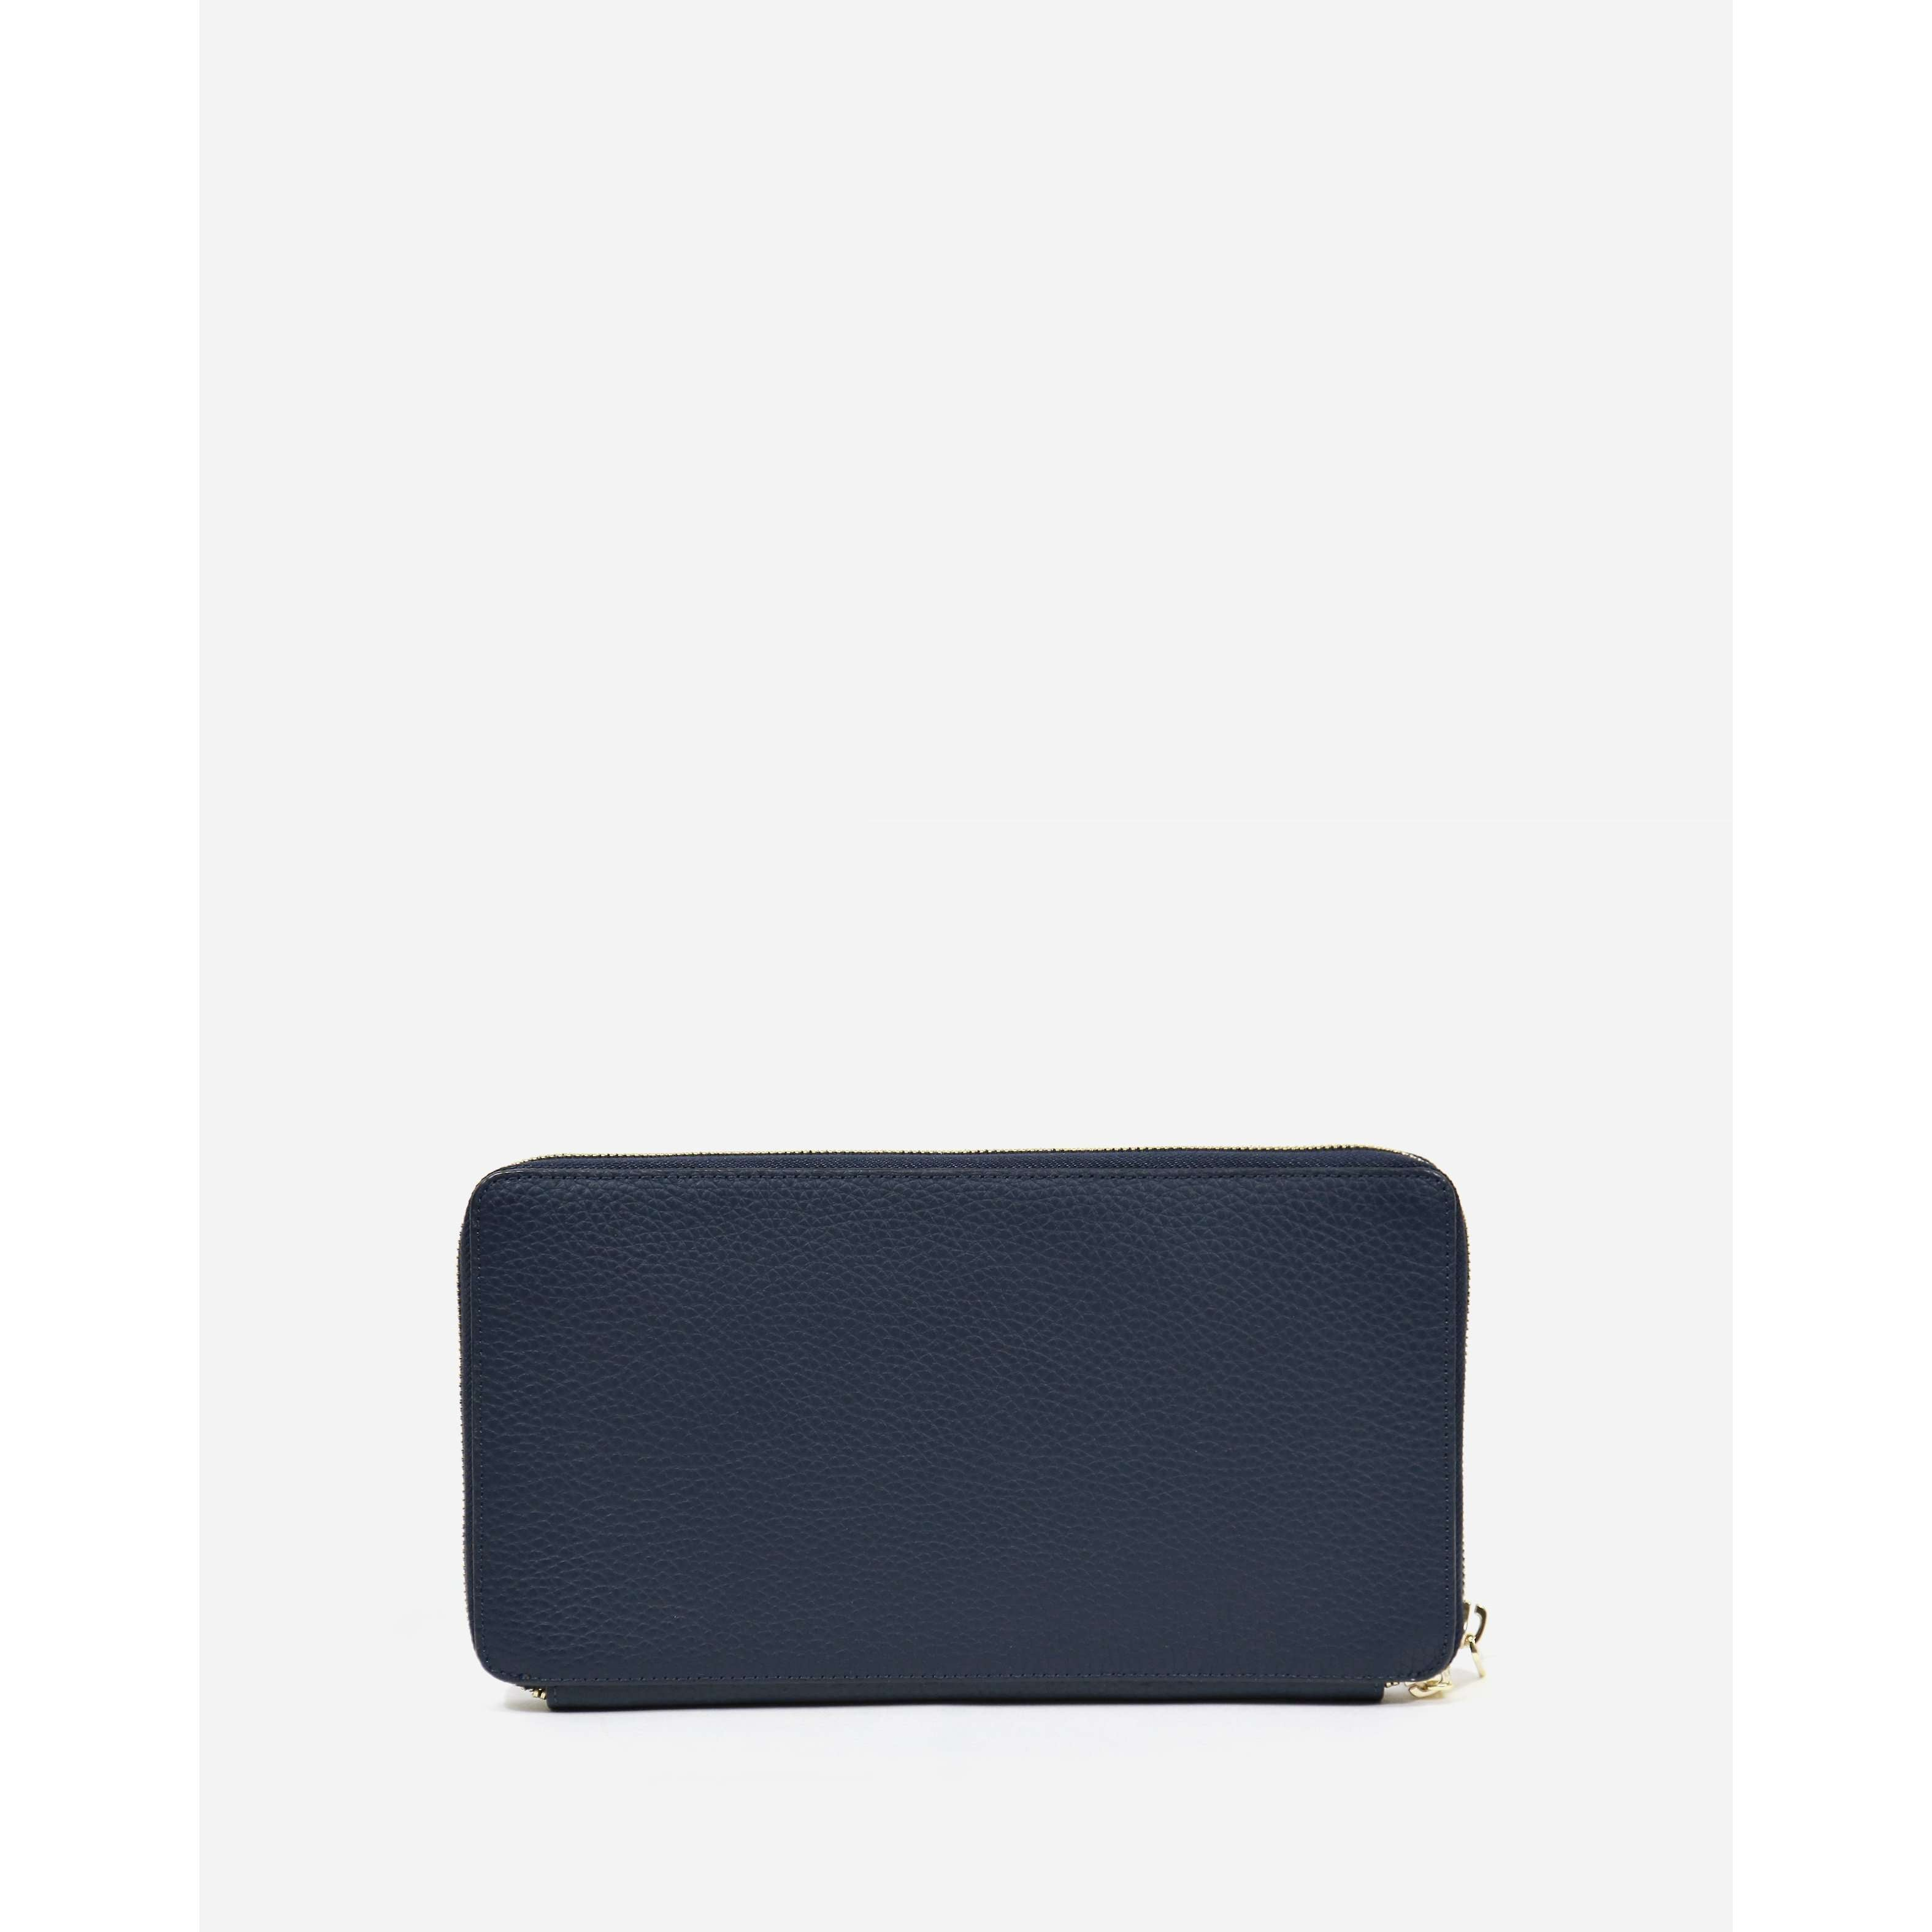 8.28 Boutique:Neely and Chloe,Neely and Chloe Travel Wallet in Navy,